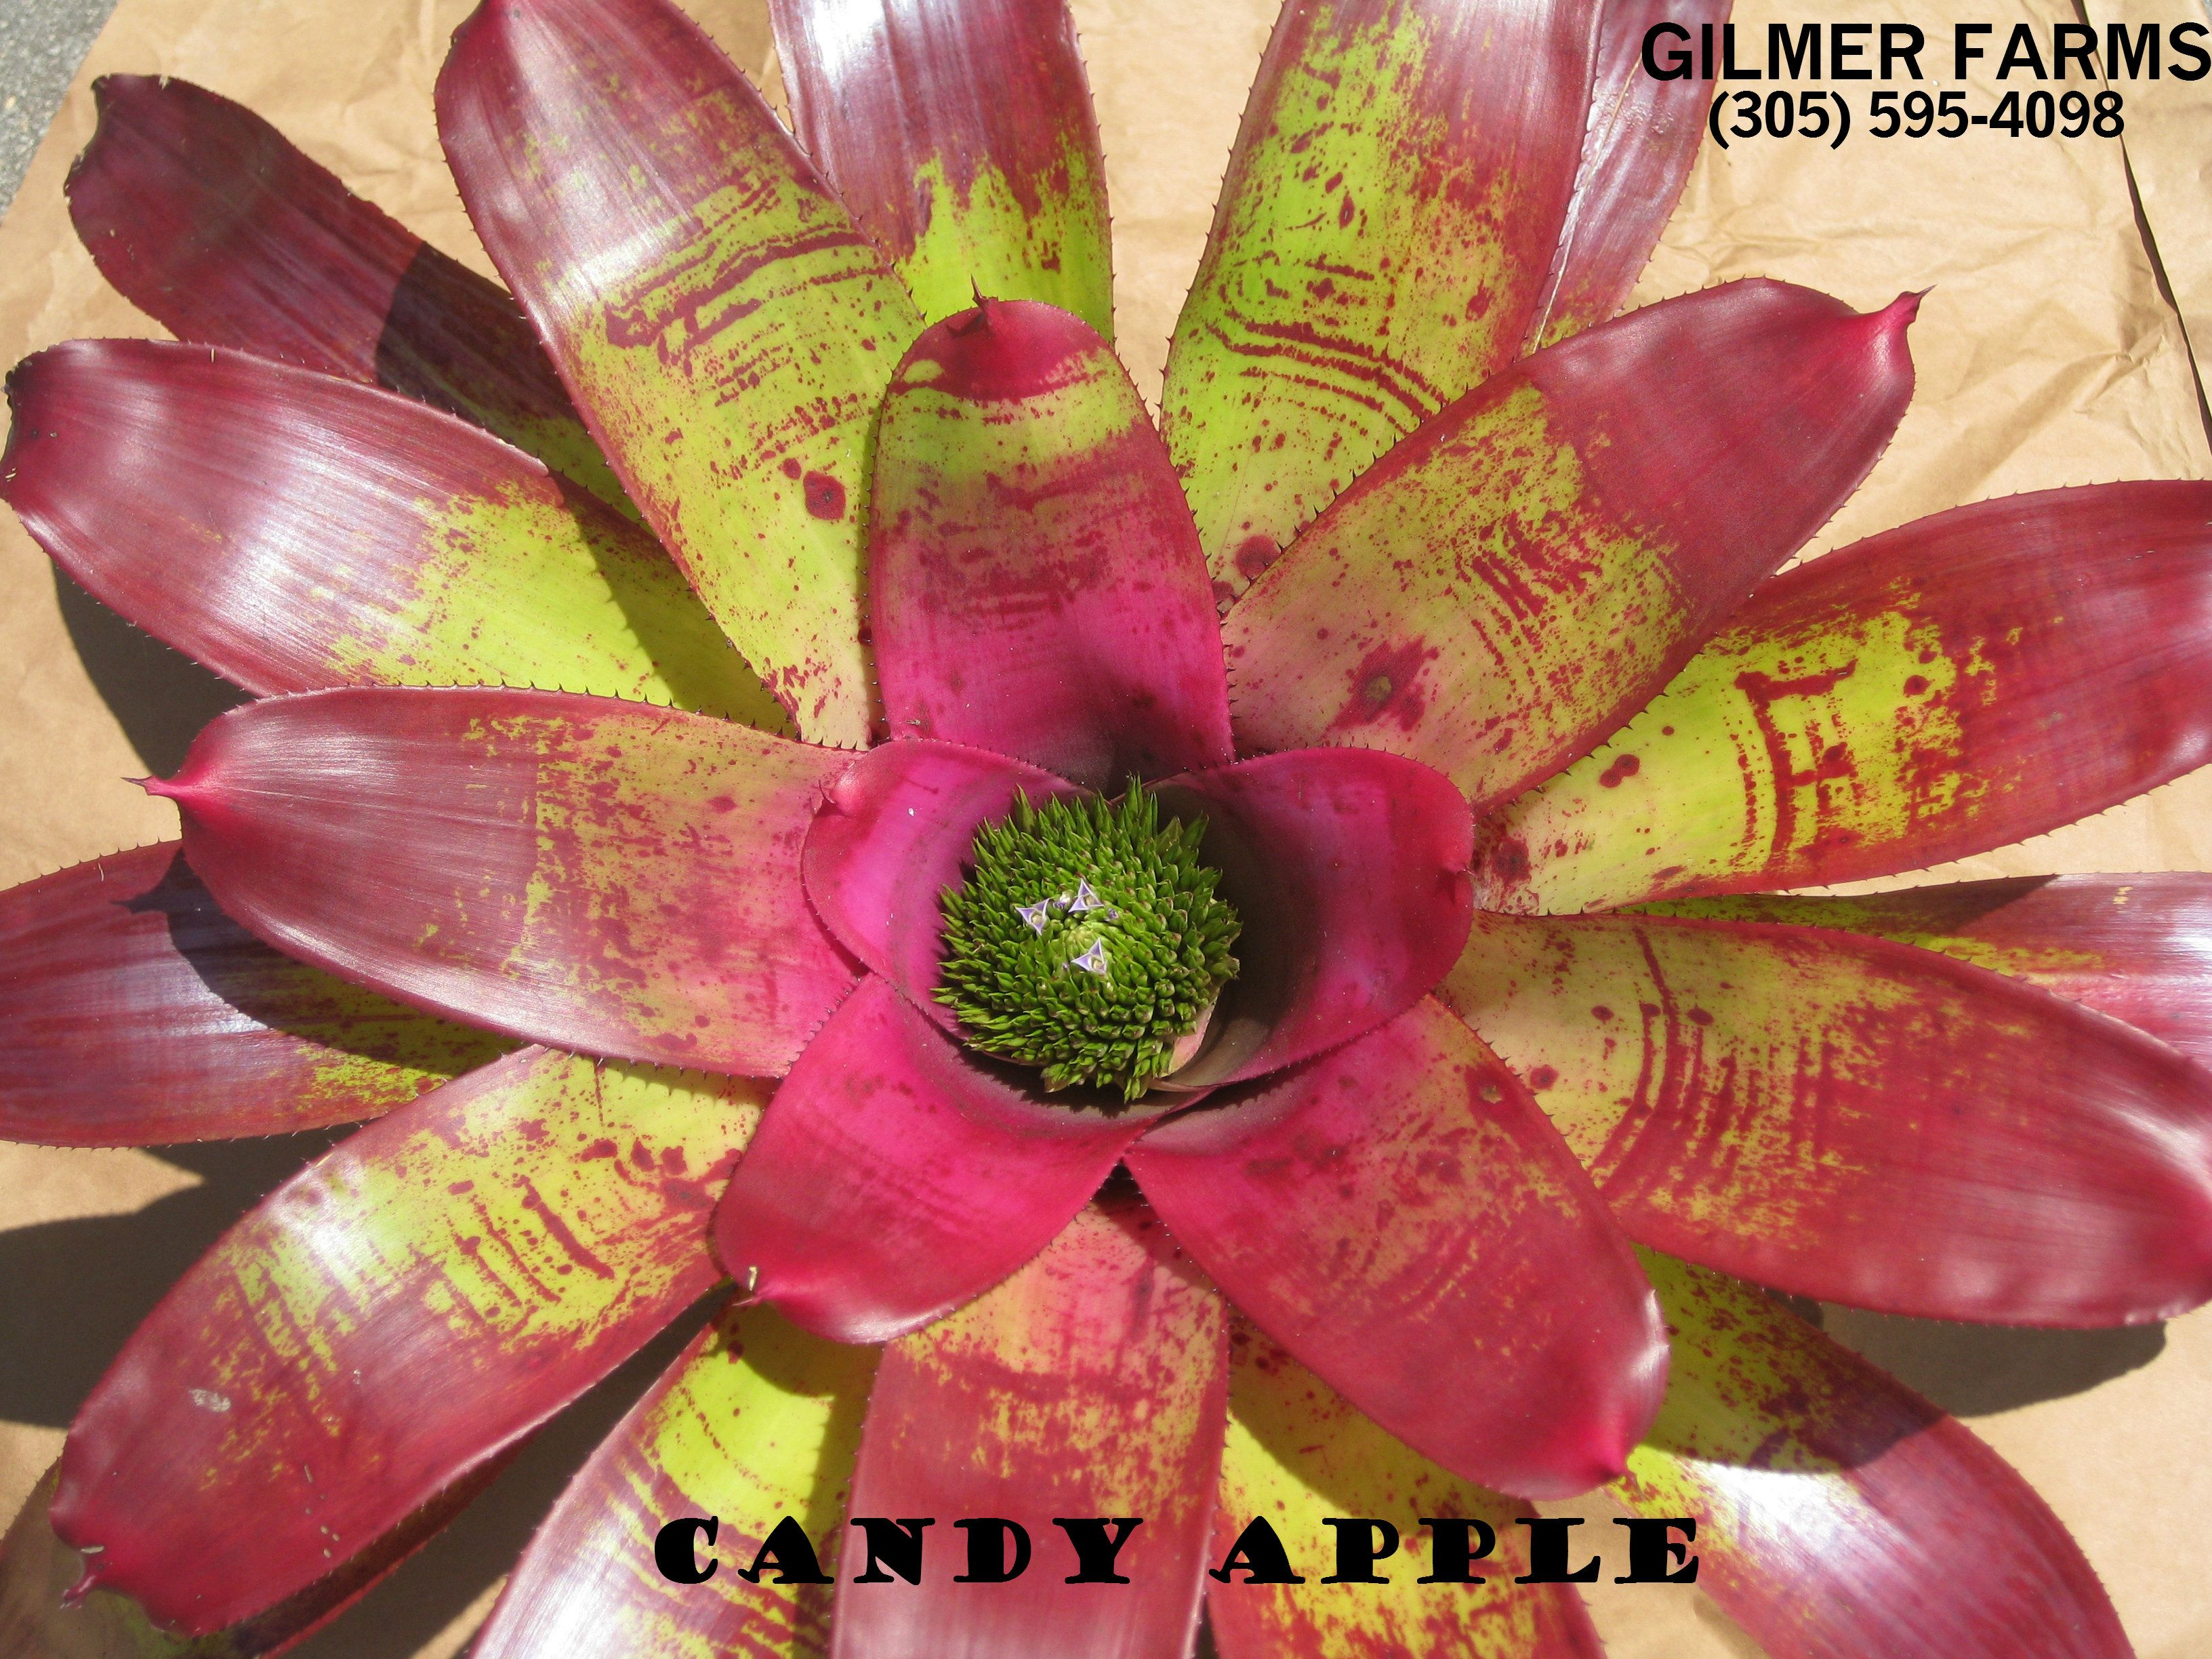 Candy Apple - New batch just arrived